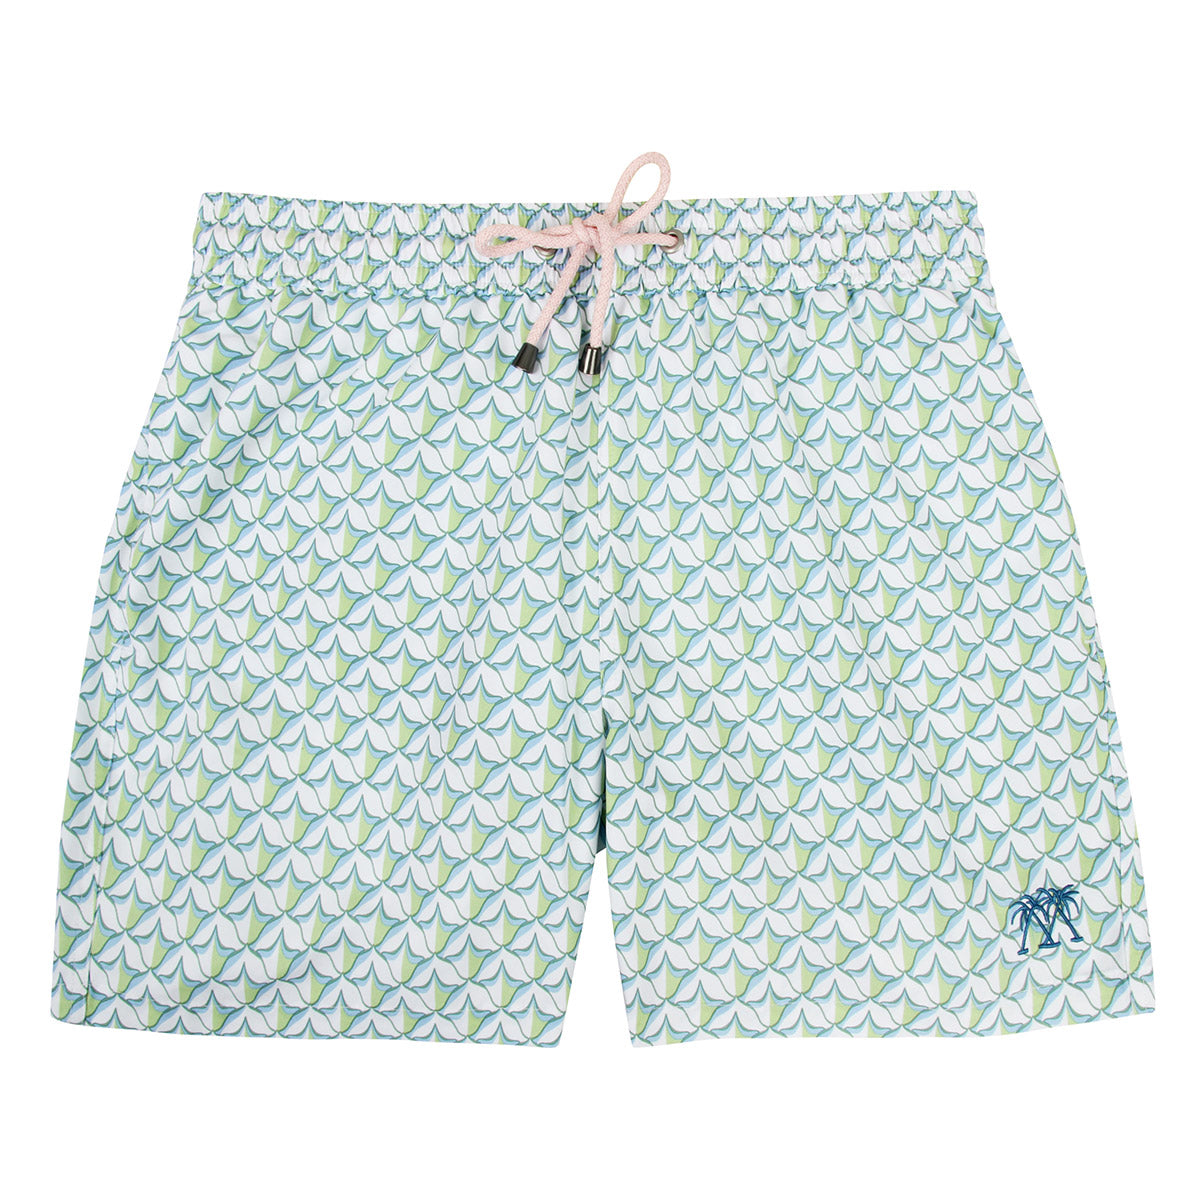 9d4cd56421a50 Mens swim trunks : PINEAPPLE PRICKLES - OLIVE - Pink House Mustique